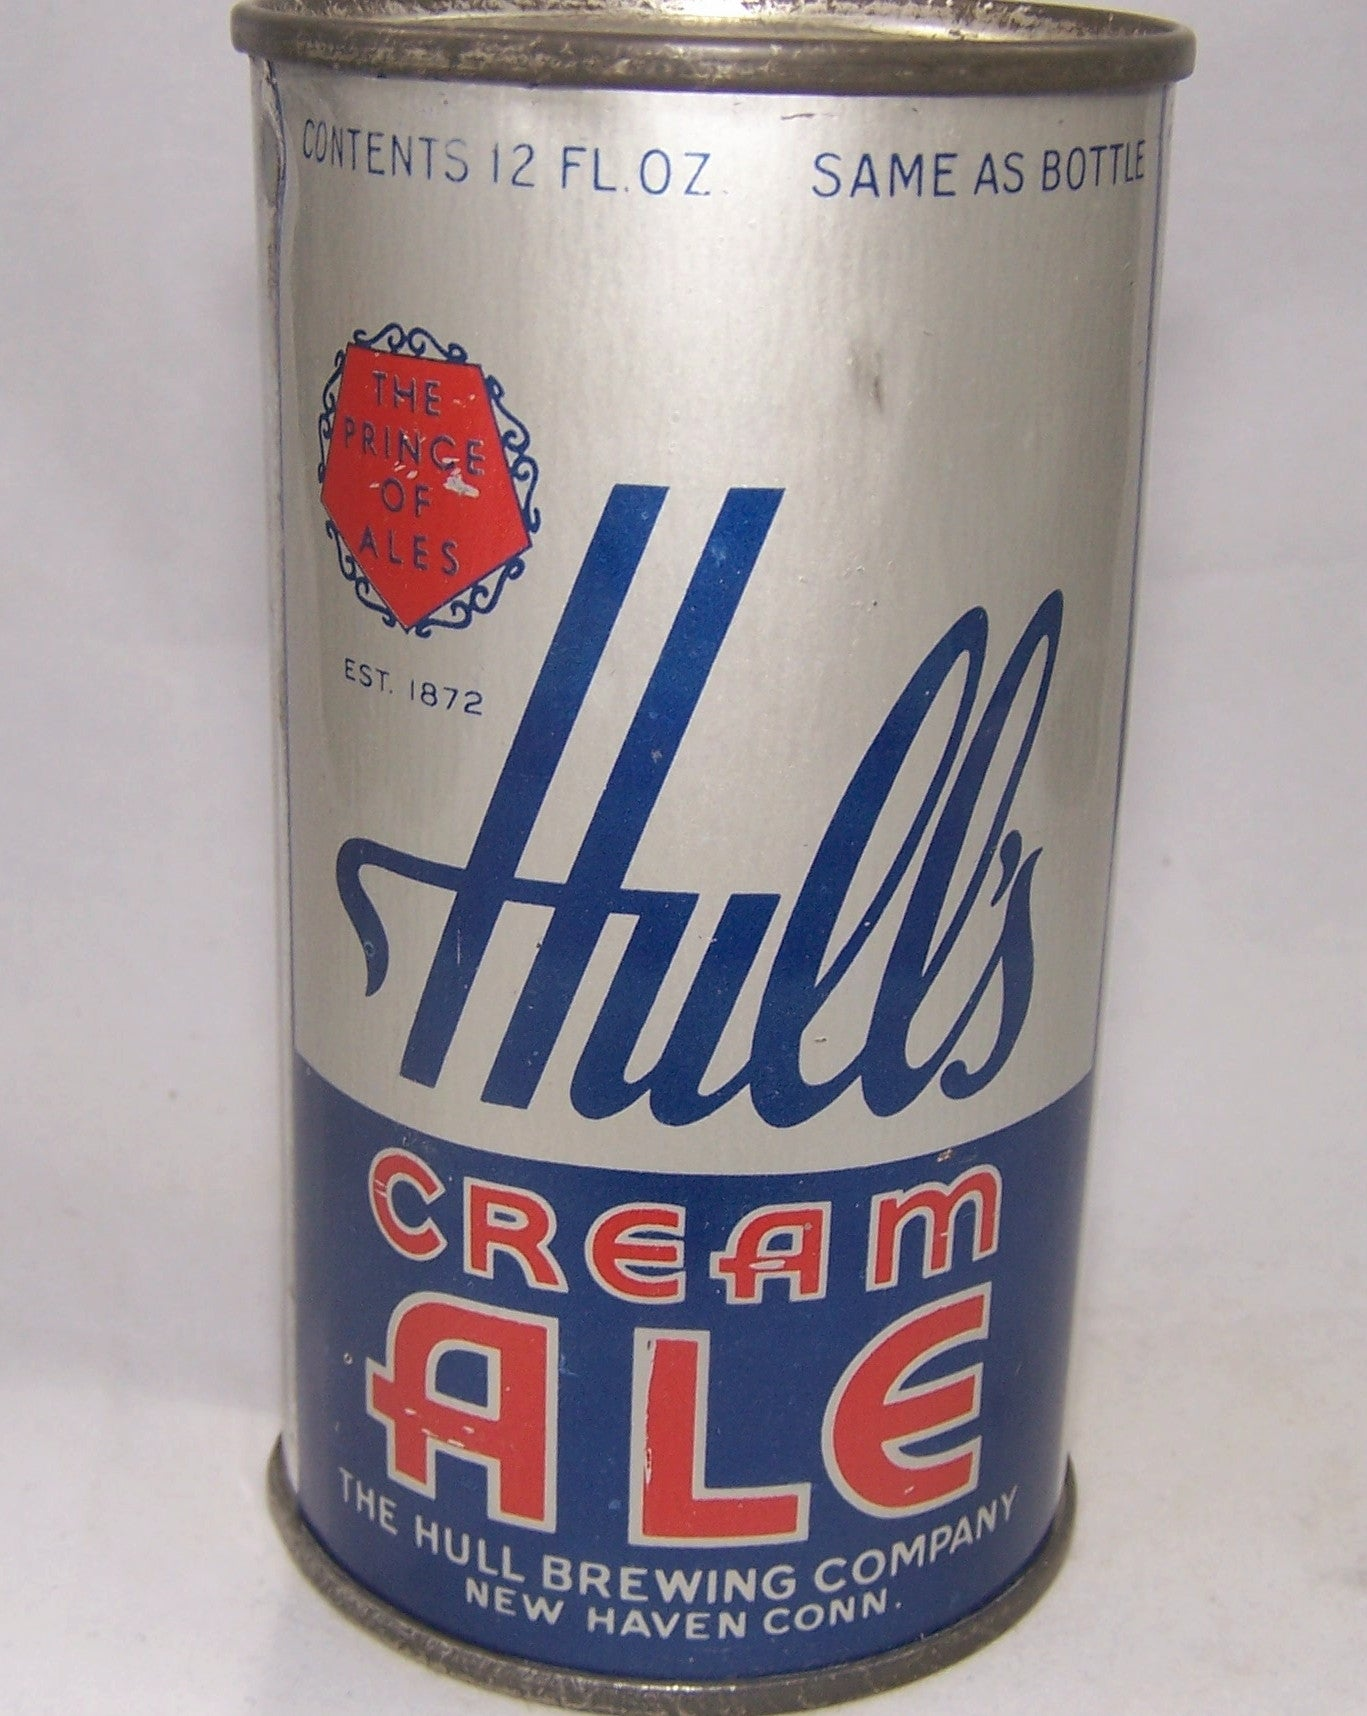 Hull's Cream Ale, Lilek # 430, Grade 1.   Sold on 04/16/18